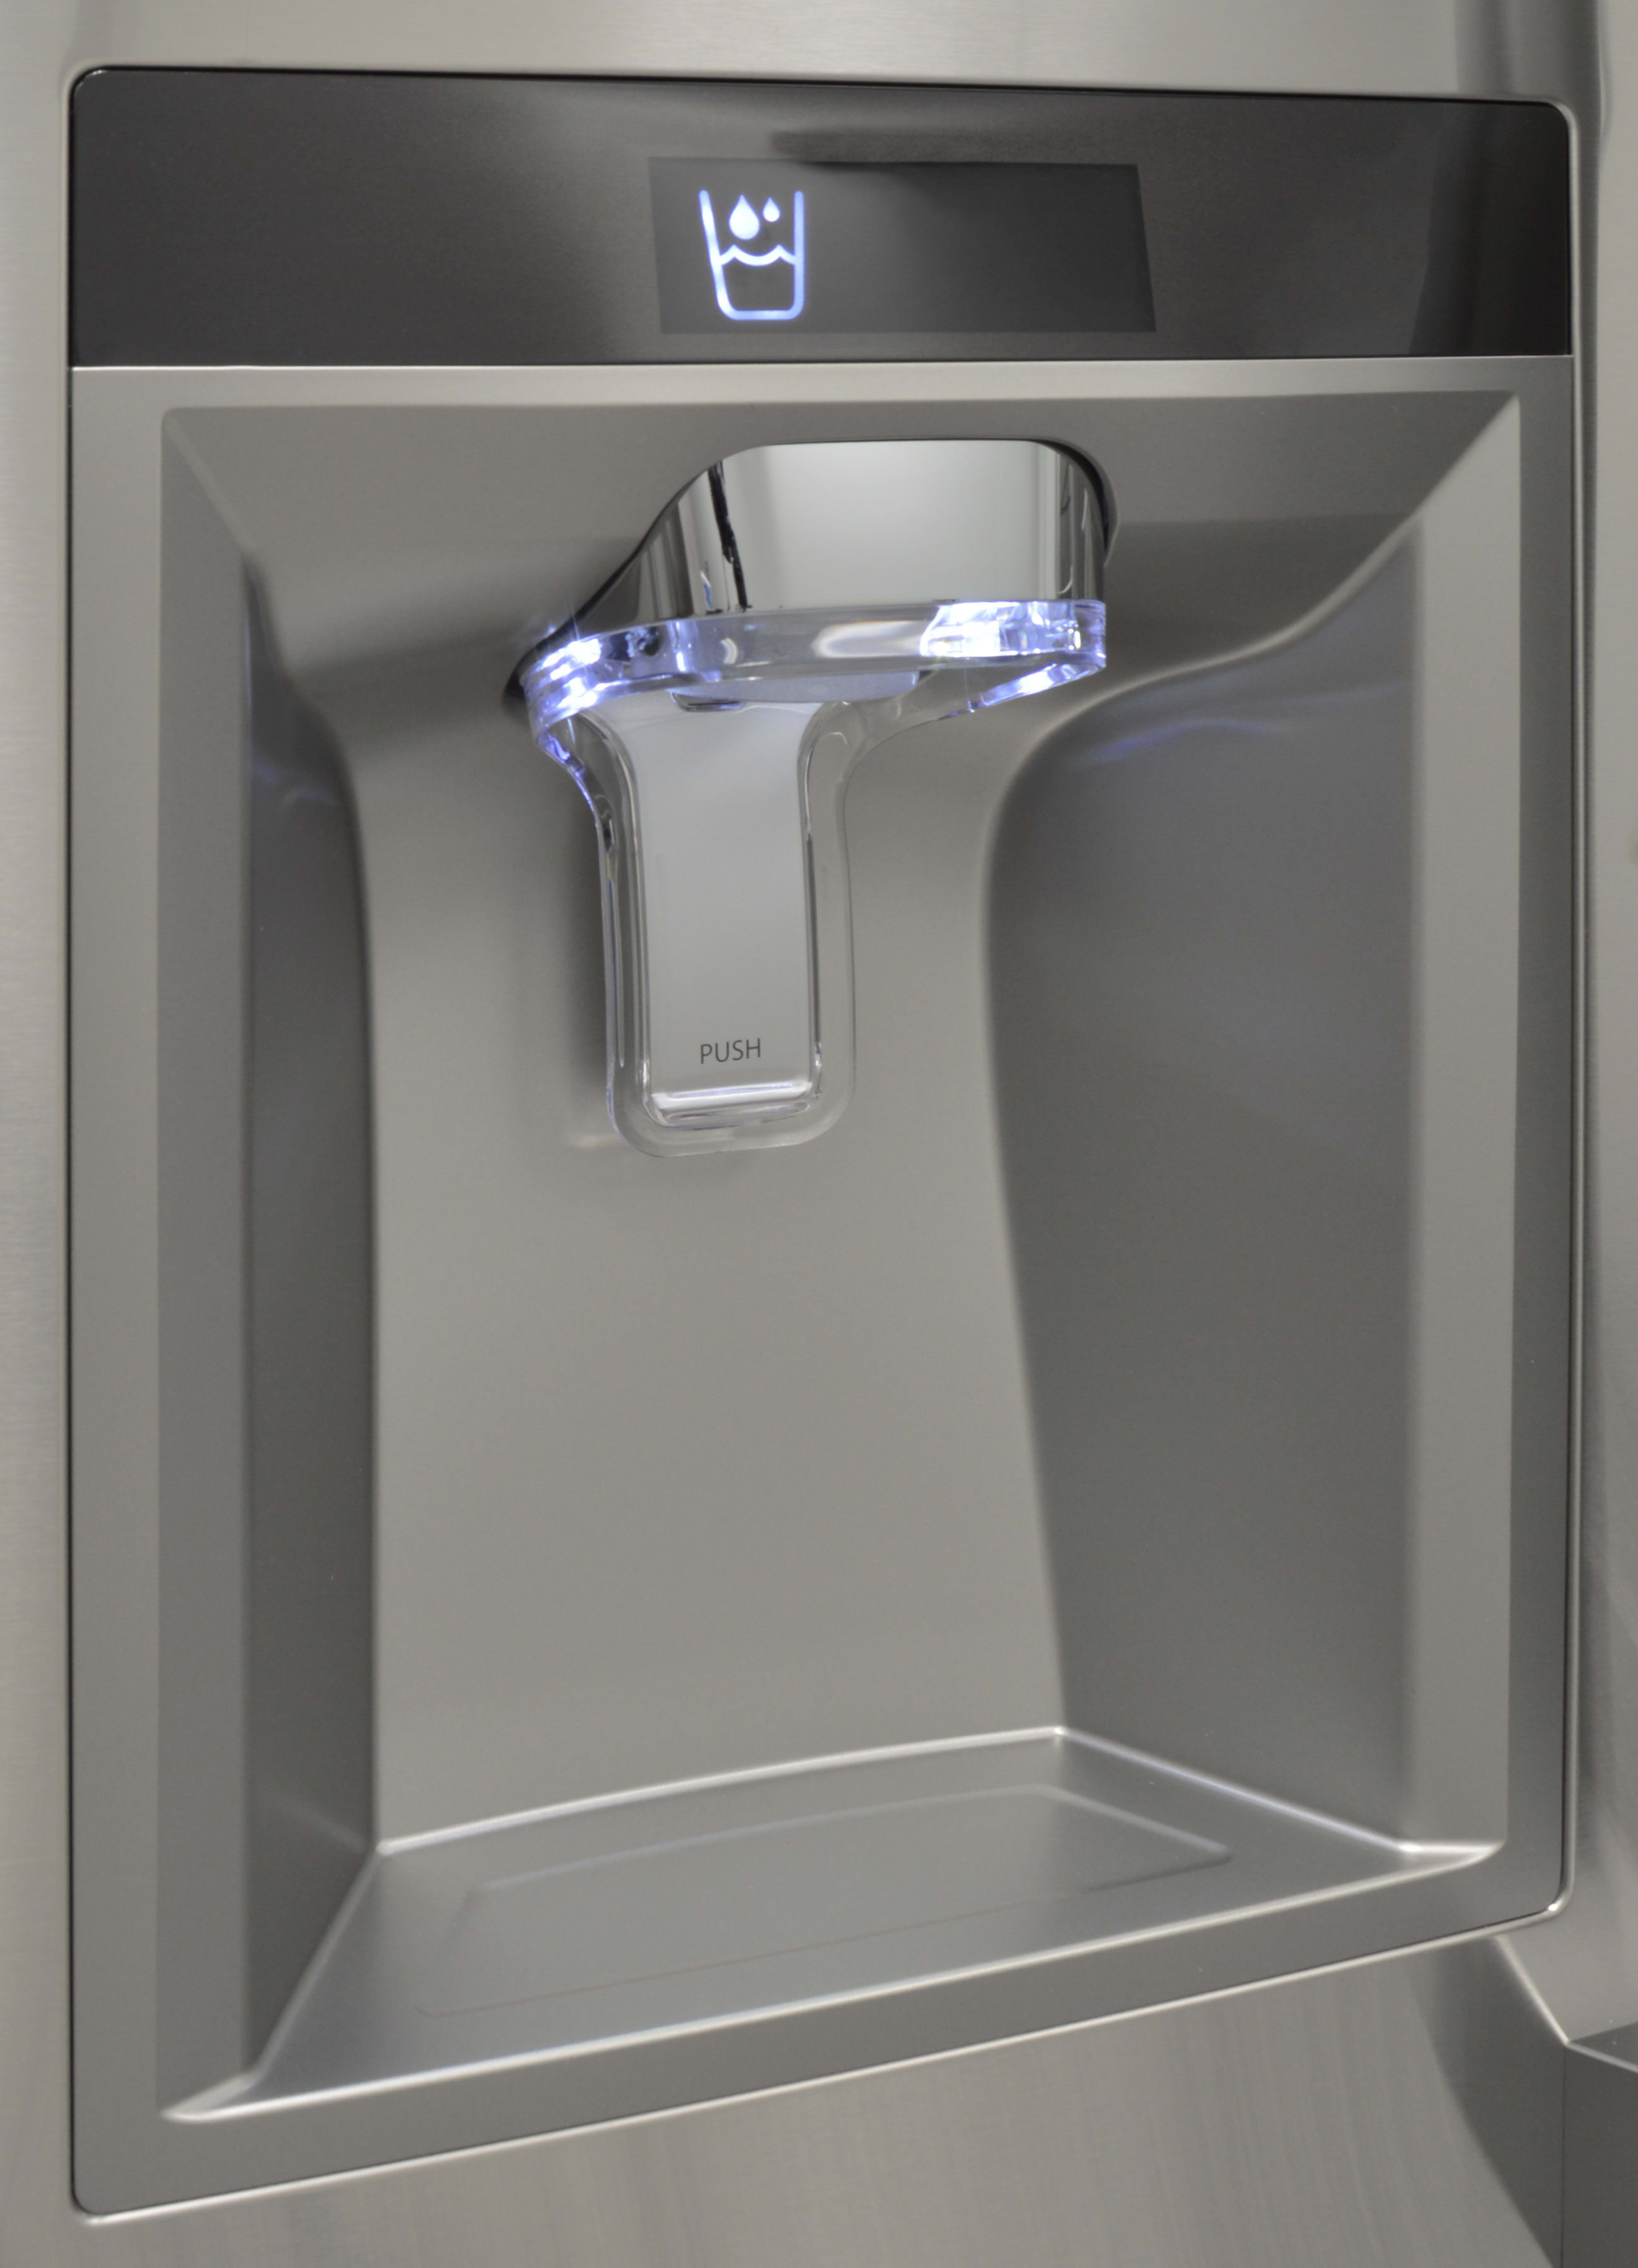 The Kenmore Pro 79993's minimalist dispenser gives the fridge a classy, high-end look.